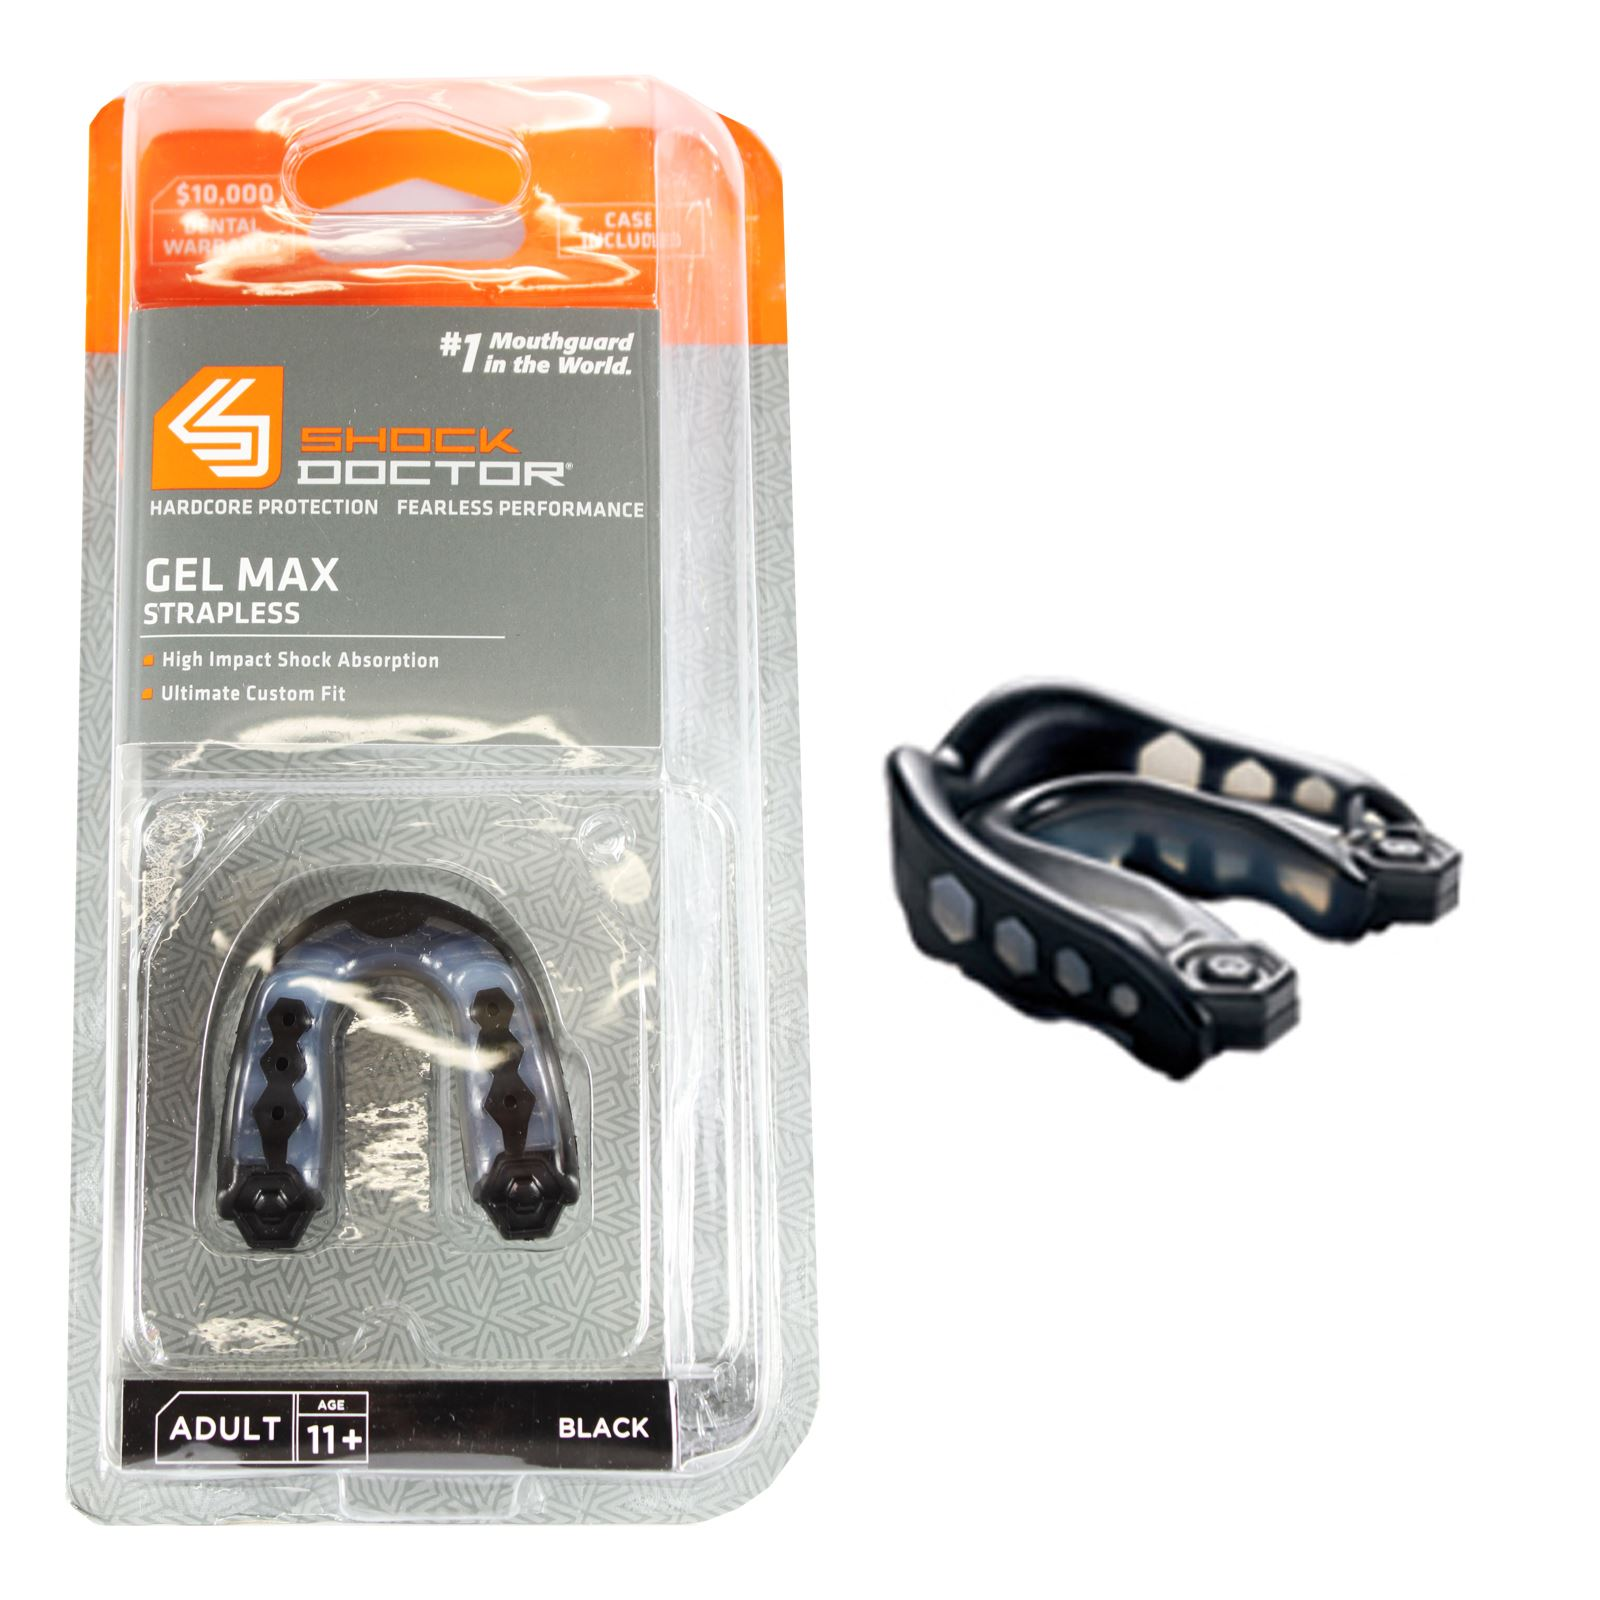 Shock-Doctor-Gel-Max-v2-Gum-Shield-Mouth-Guard-Adult-amp-Youth-Boxing-Rugby-MMA miniatuur 3